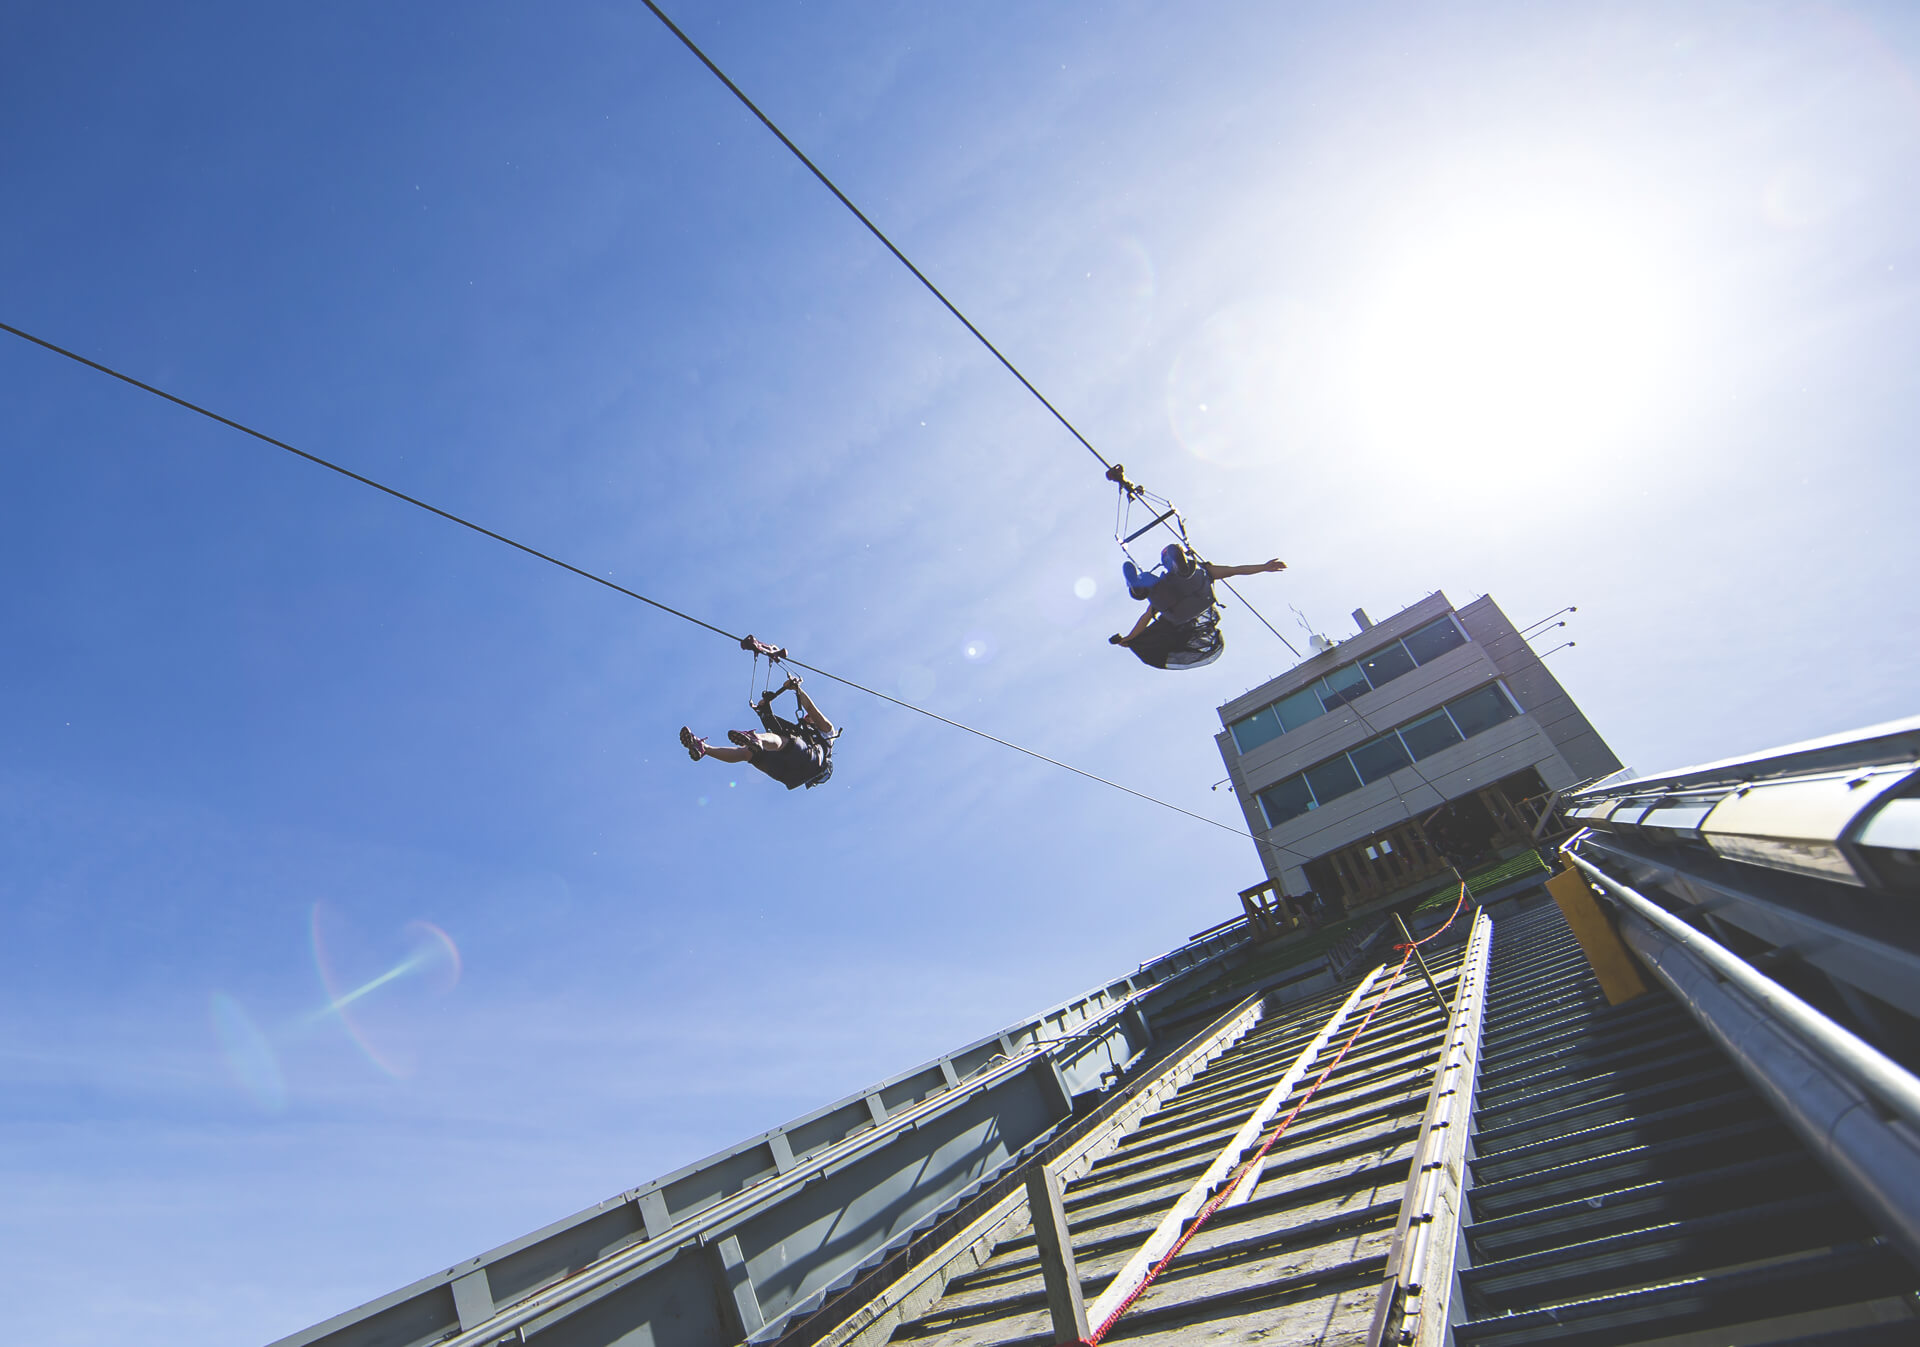 Feel the rush of North America's fastest zipline at WinSport.